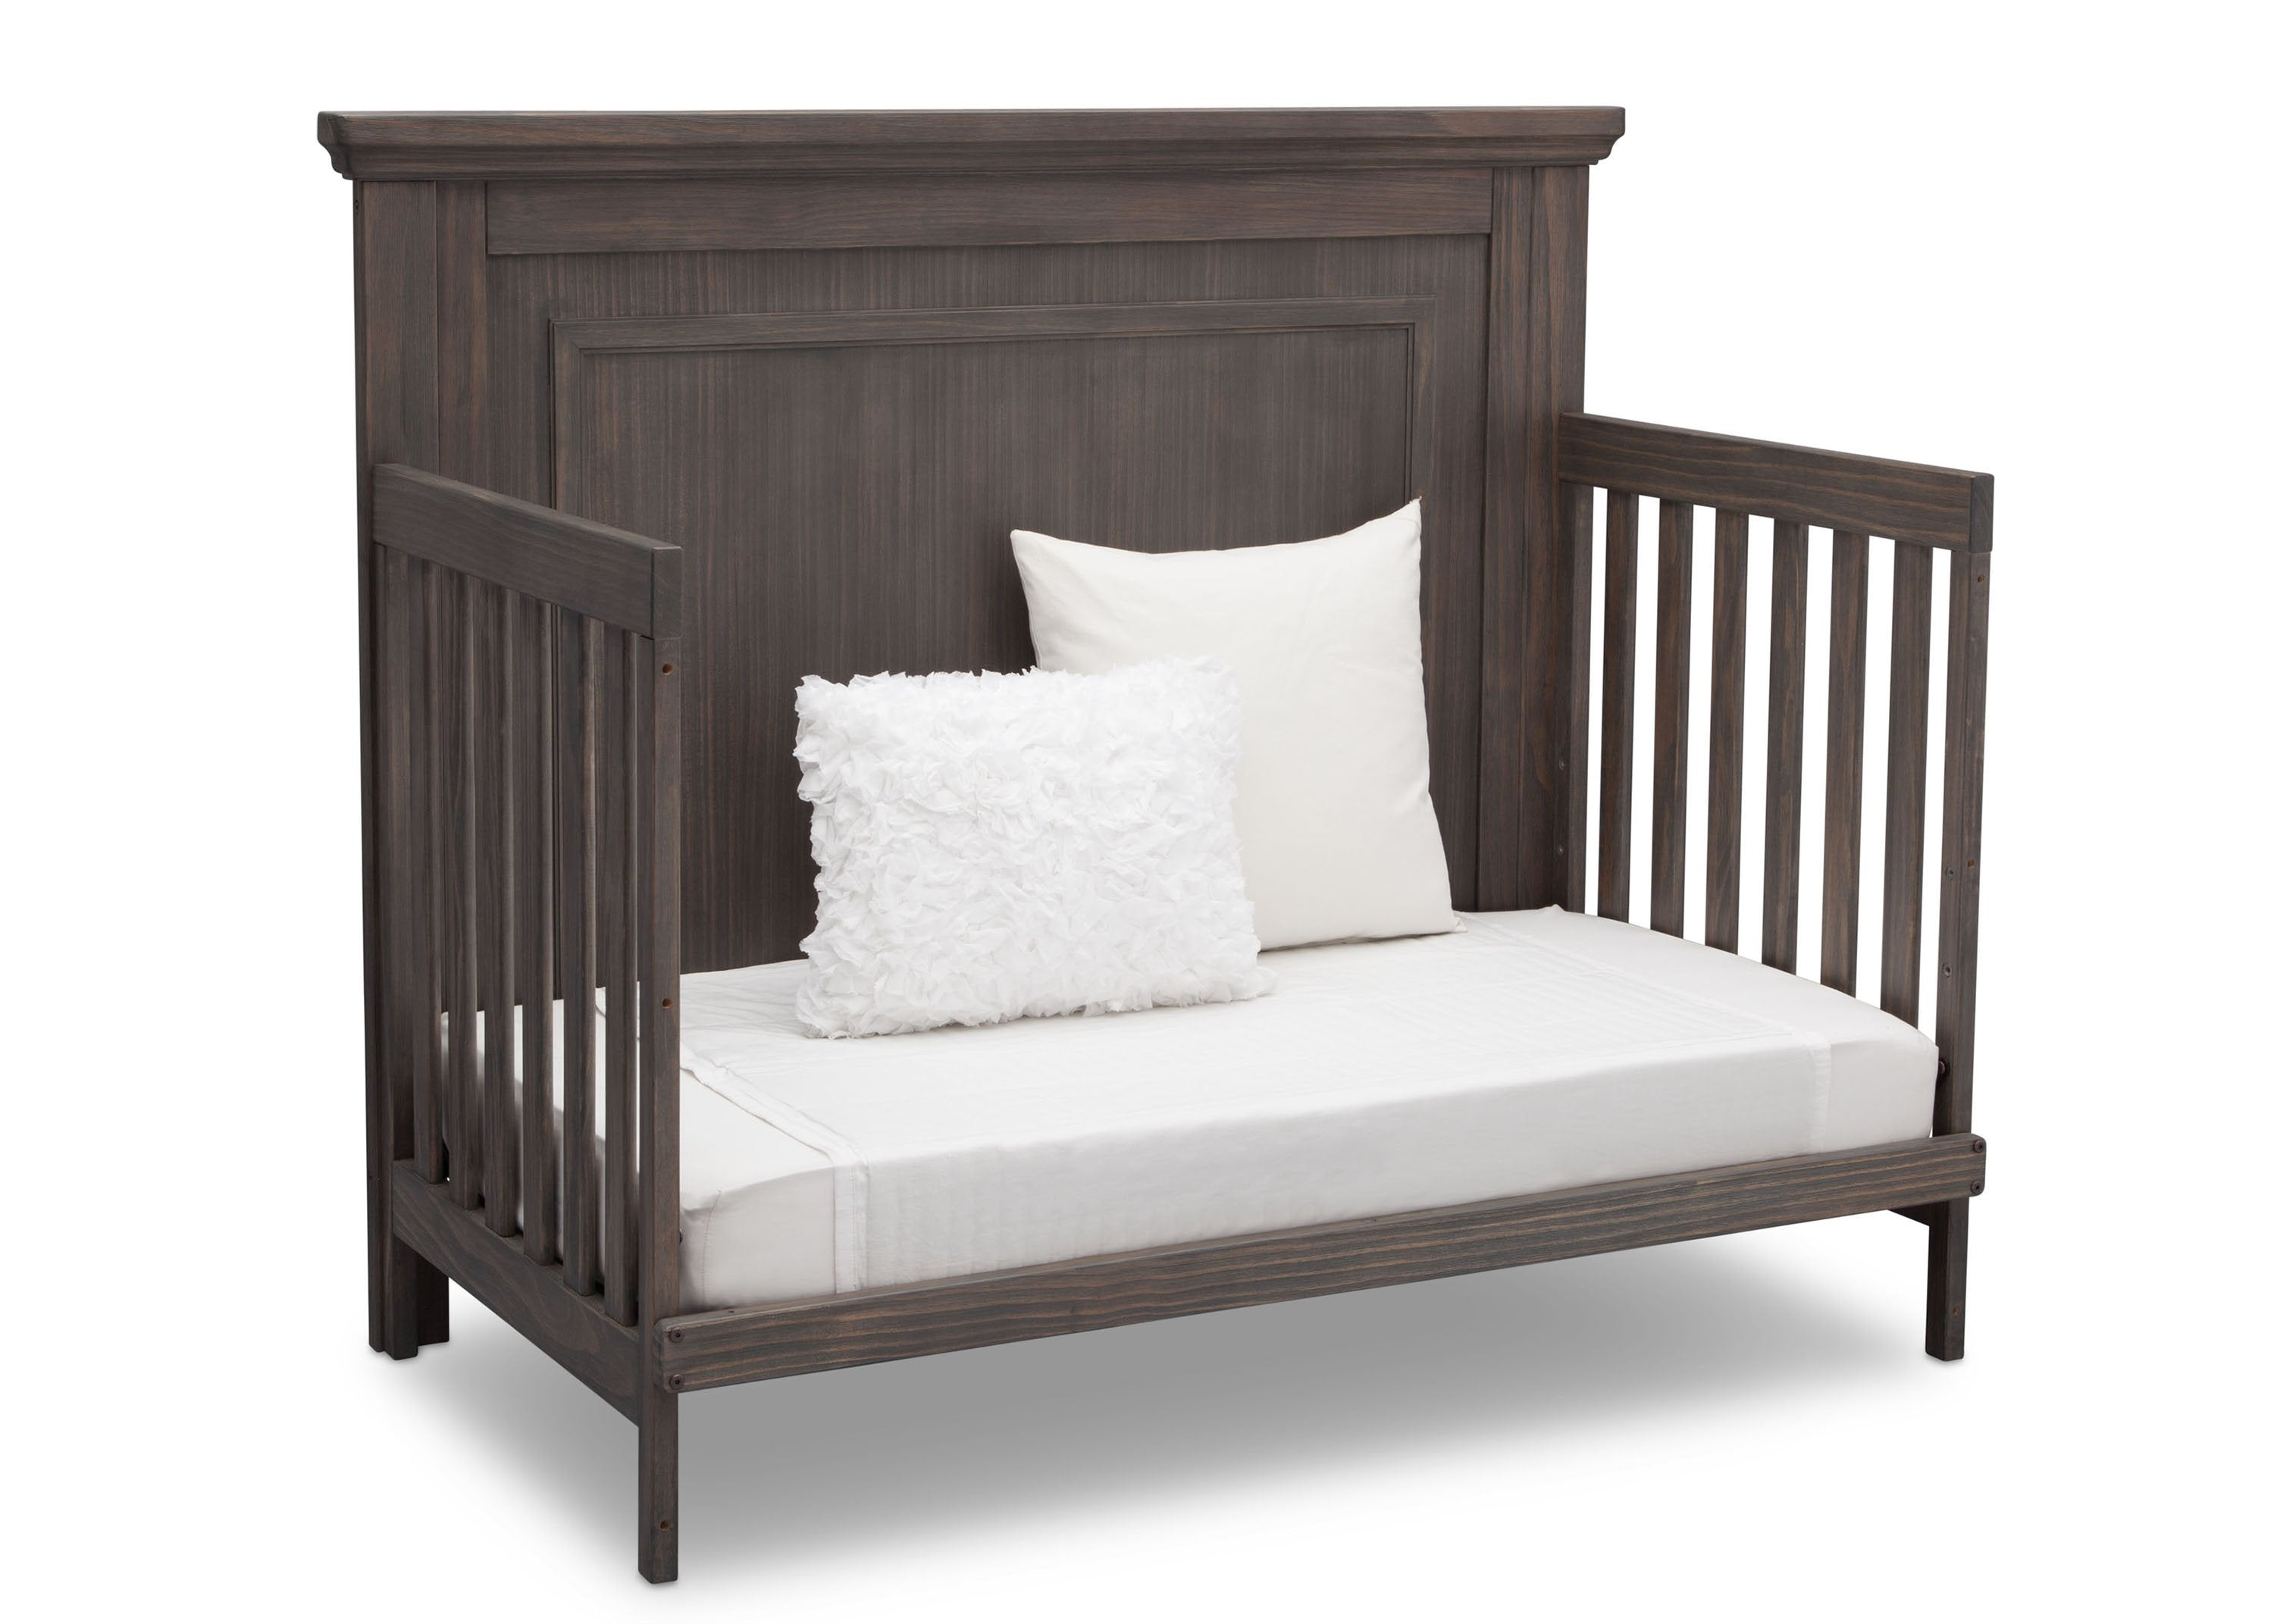 home camden craft cribs in gray lifetime product child free garden cool crib convertible